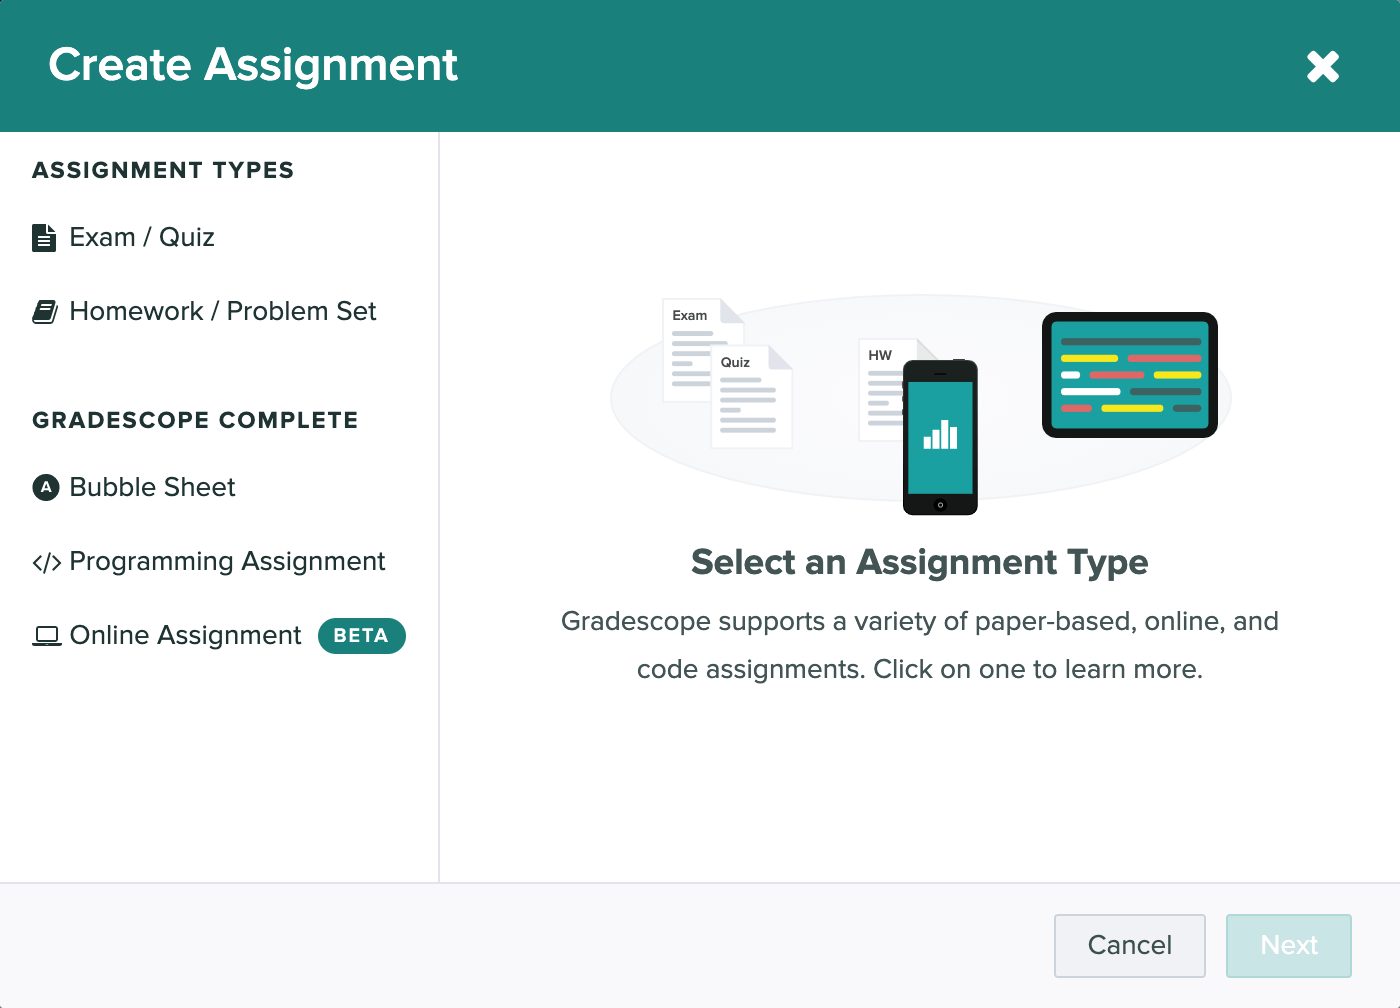 The create assignment modal with the various assignment types